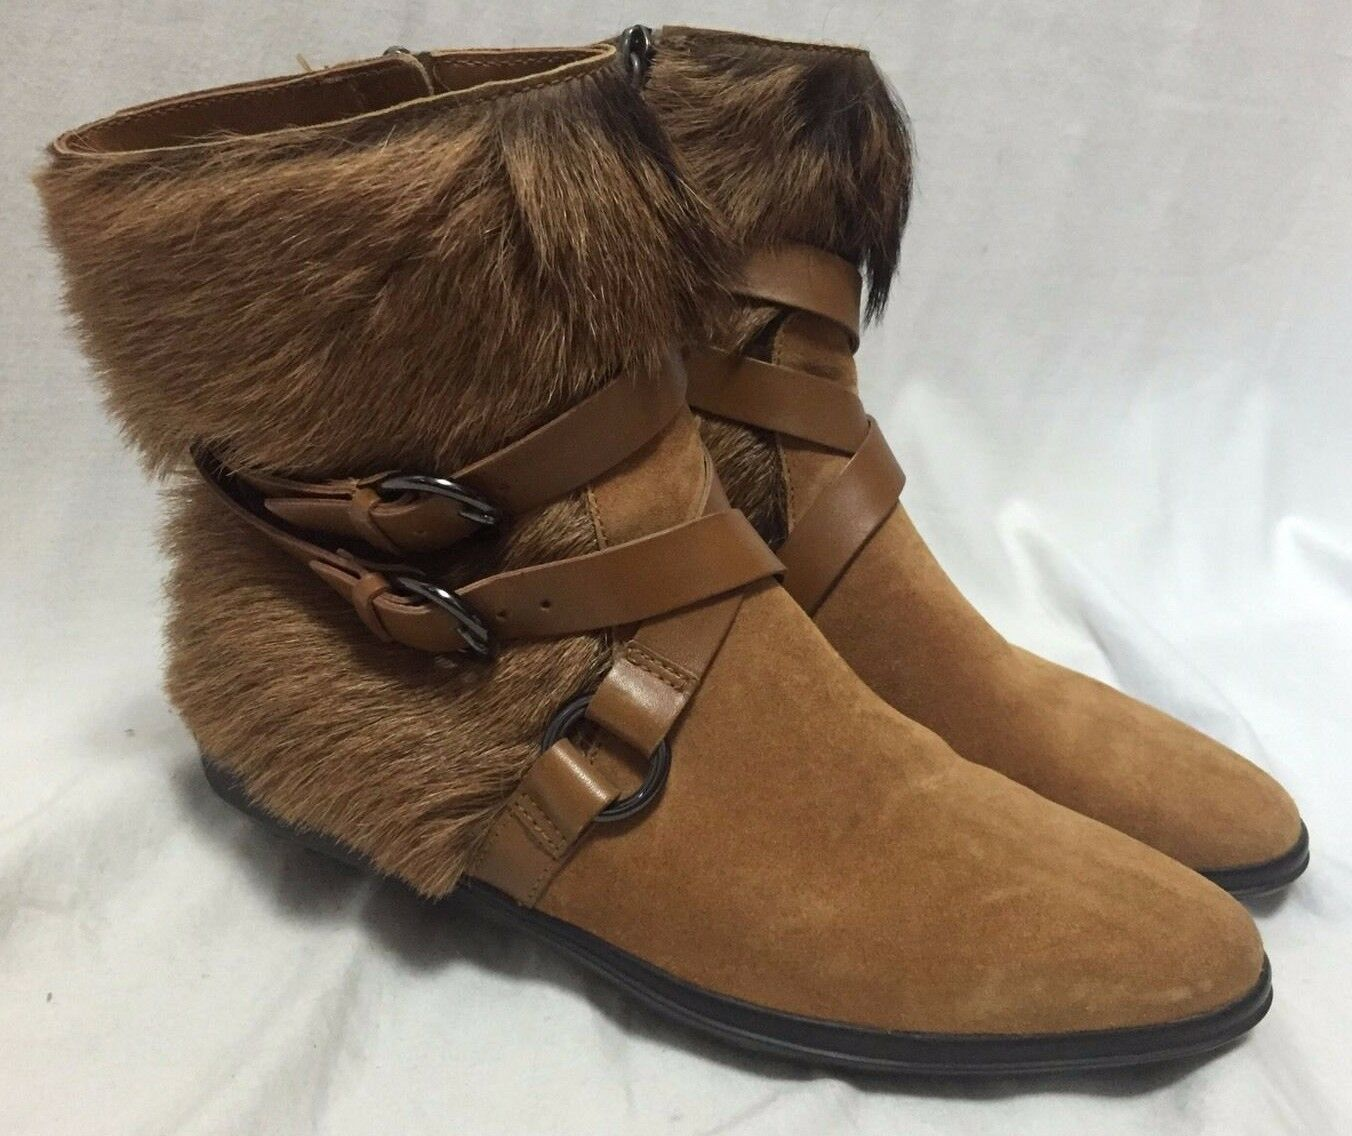 Tod's Fashion Harness Fur Ankle Boots Women's 7 37 Tan Suede Belted shoes